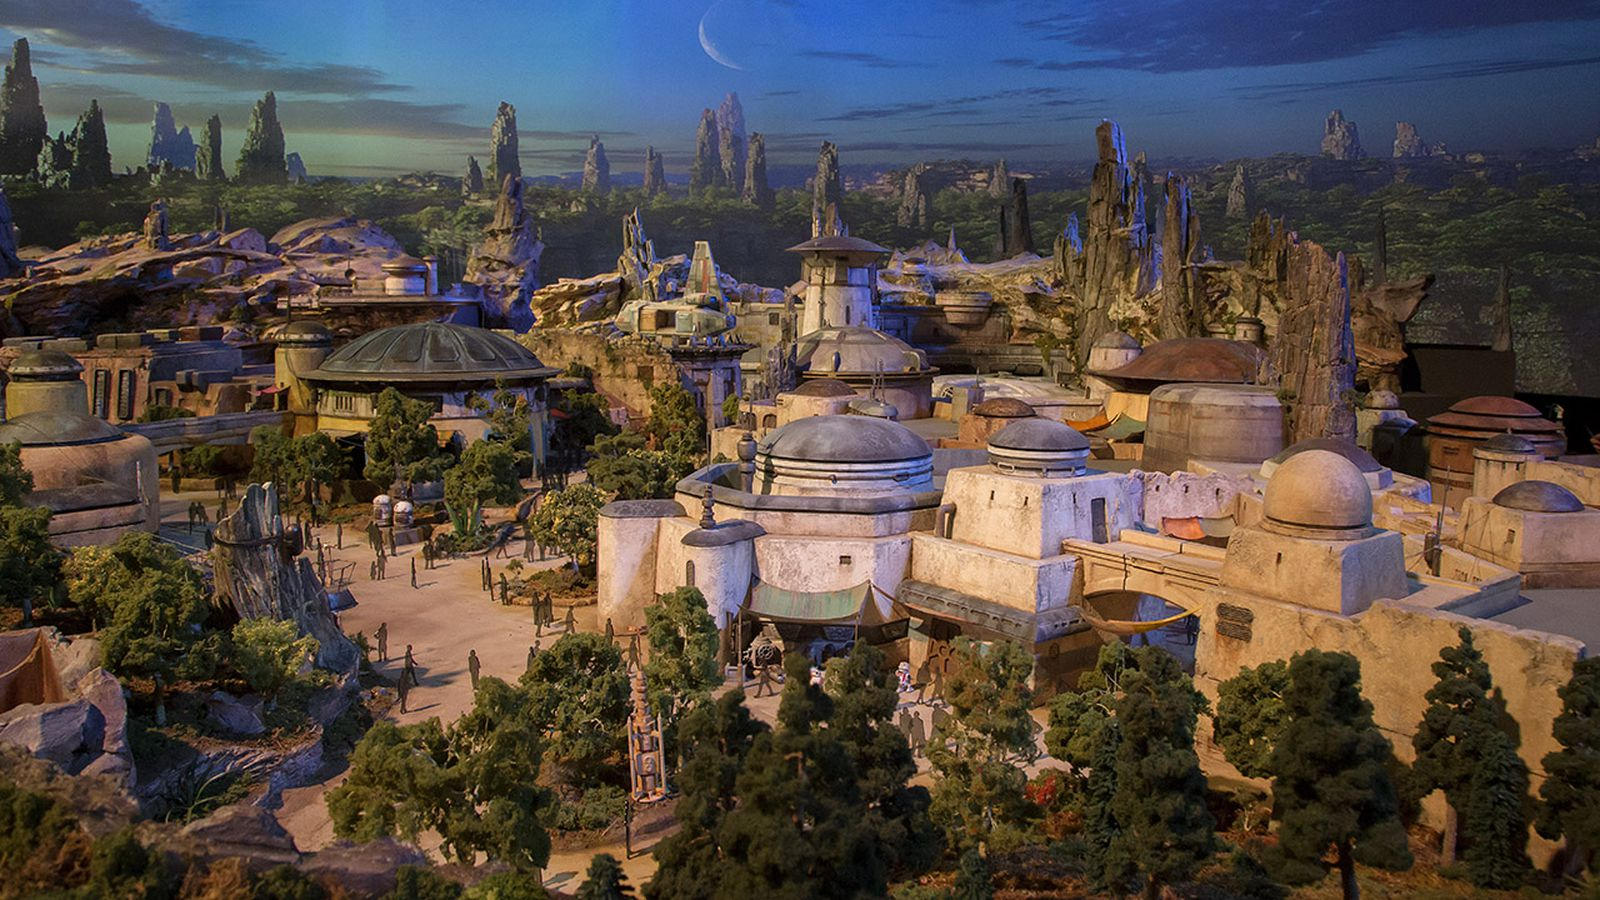 Star Wars Land gets an official name, will include BB-8, Chewbacca and Kylo Ren